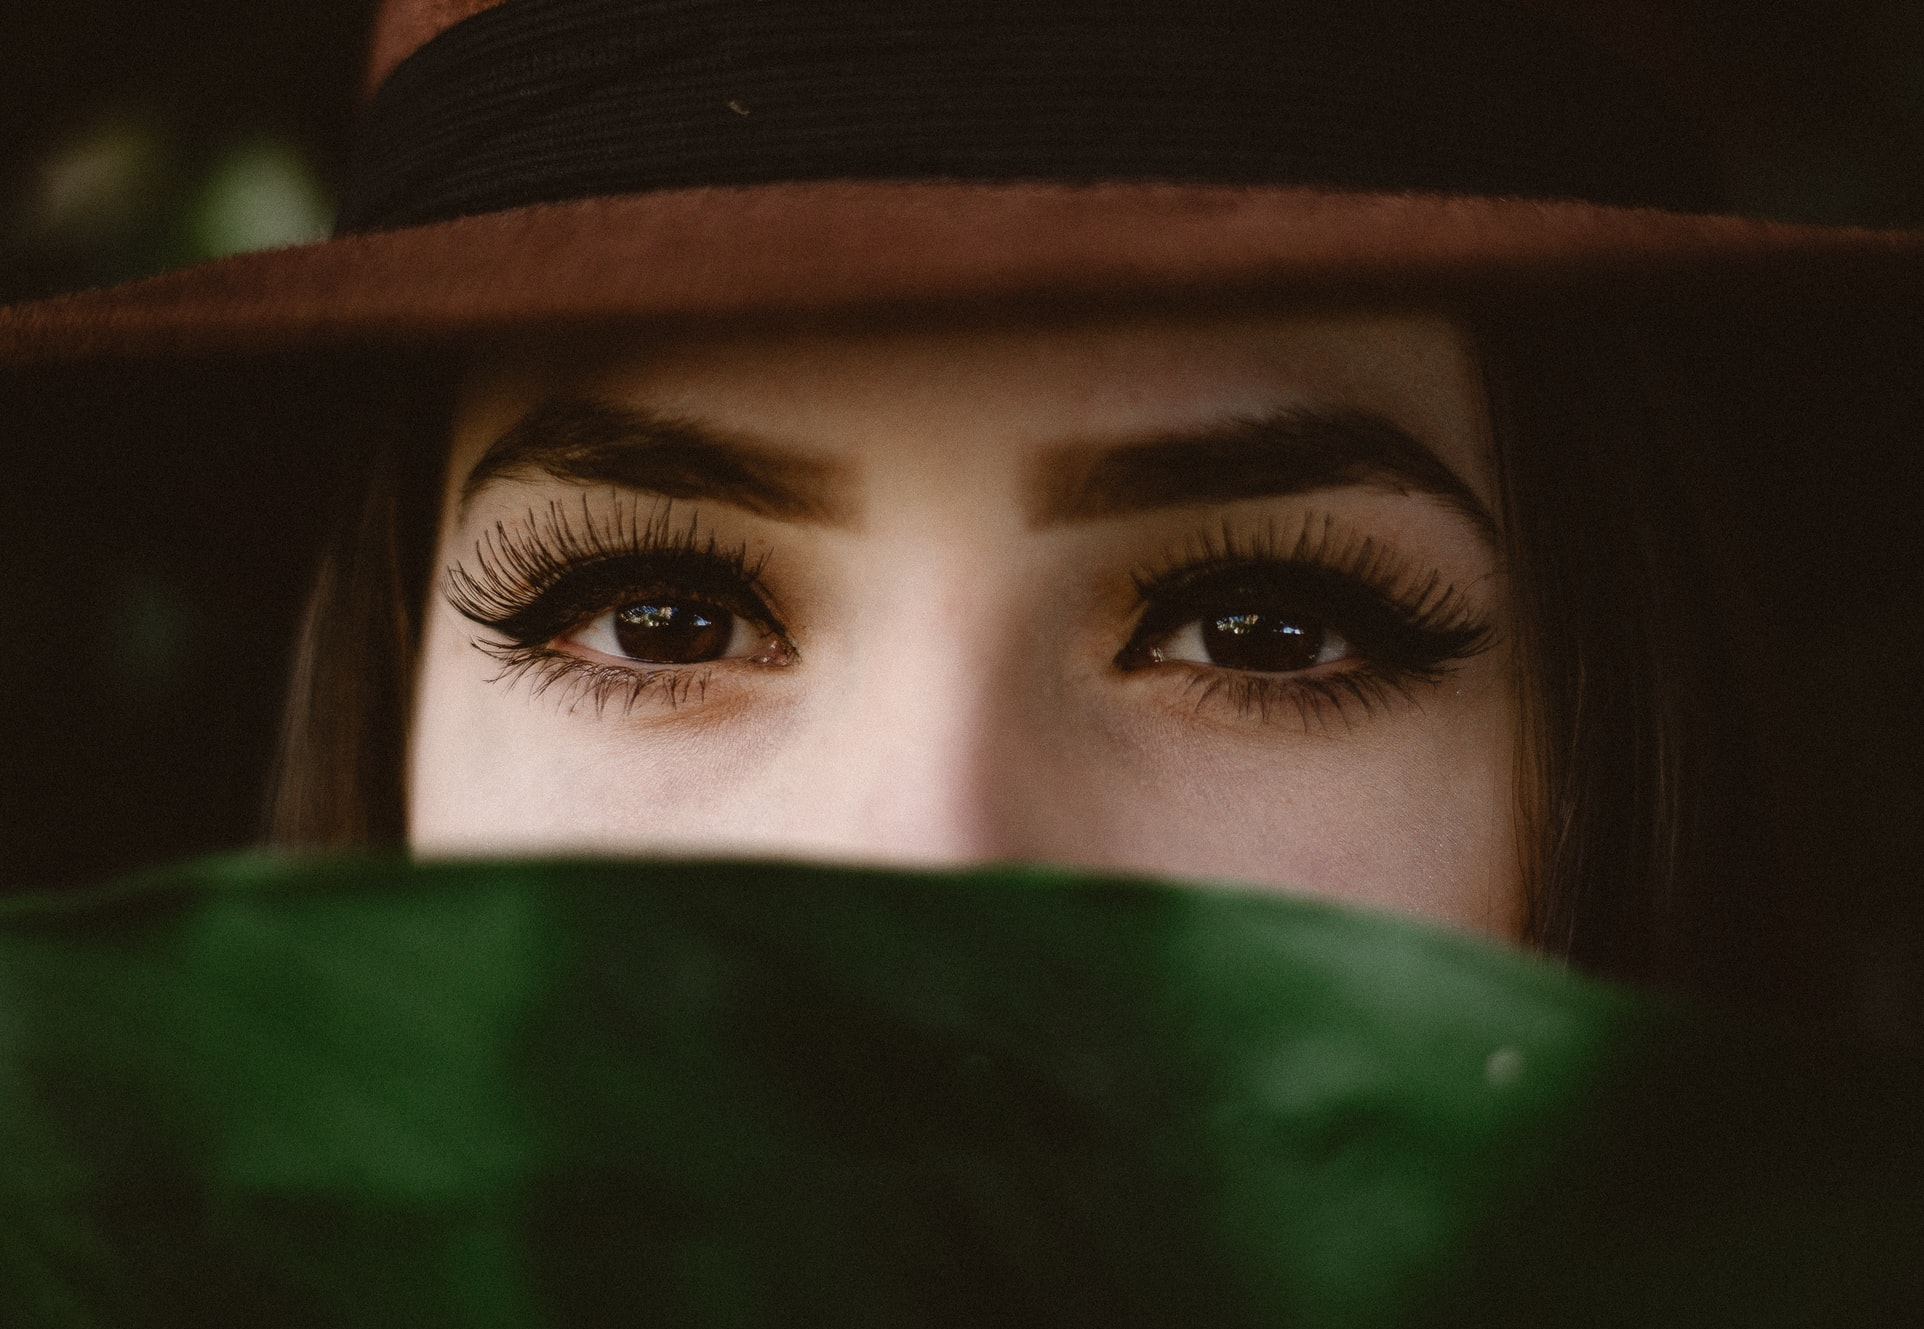 All about Eyelashes